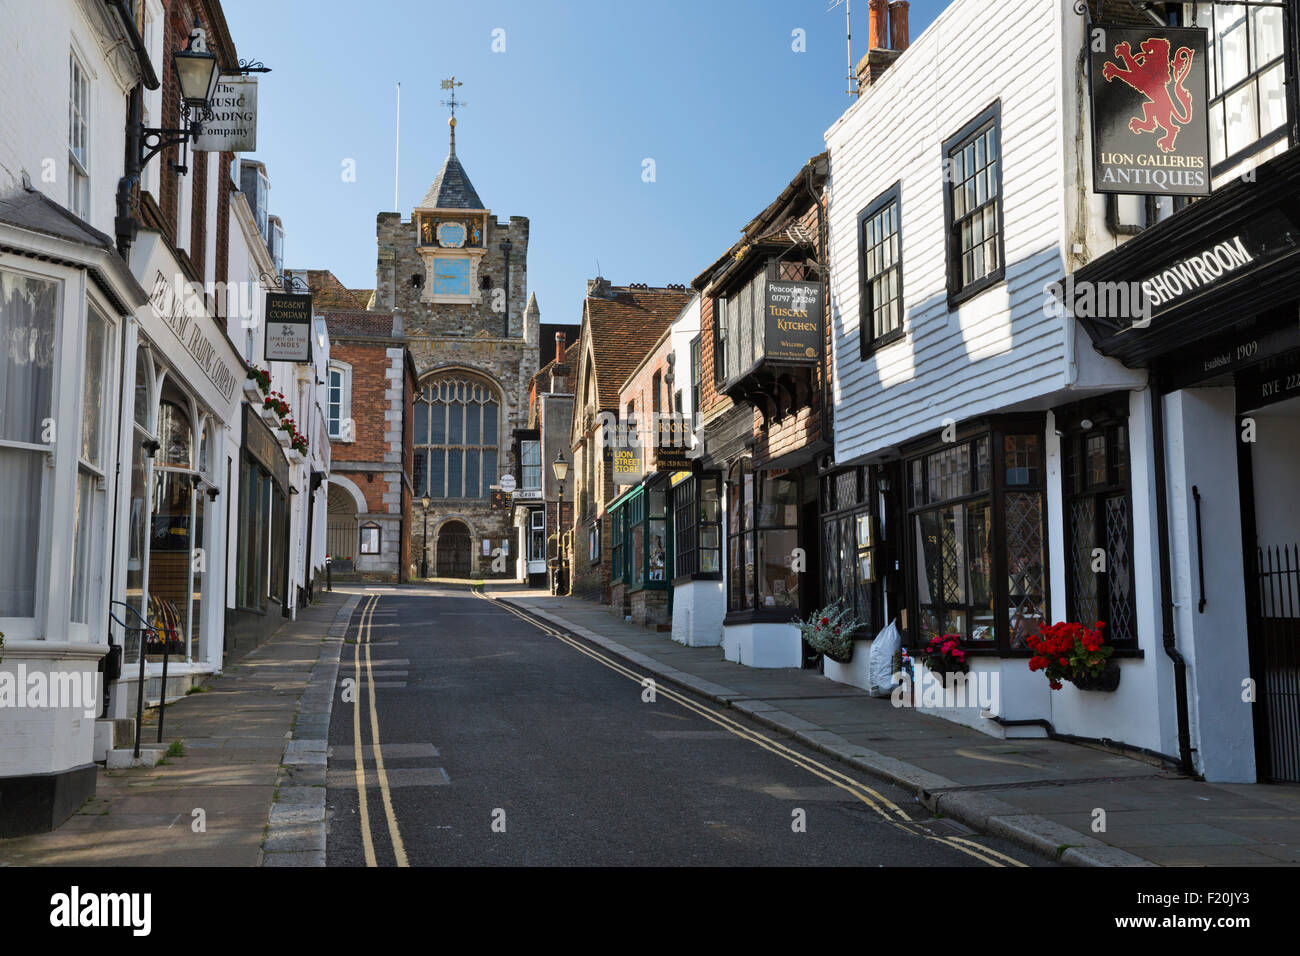 Lion Street et Saint Mary's Church, Rye, East Sussex, Angleterre, Royaume-Uni, Europe Photo Stock